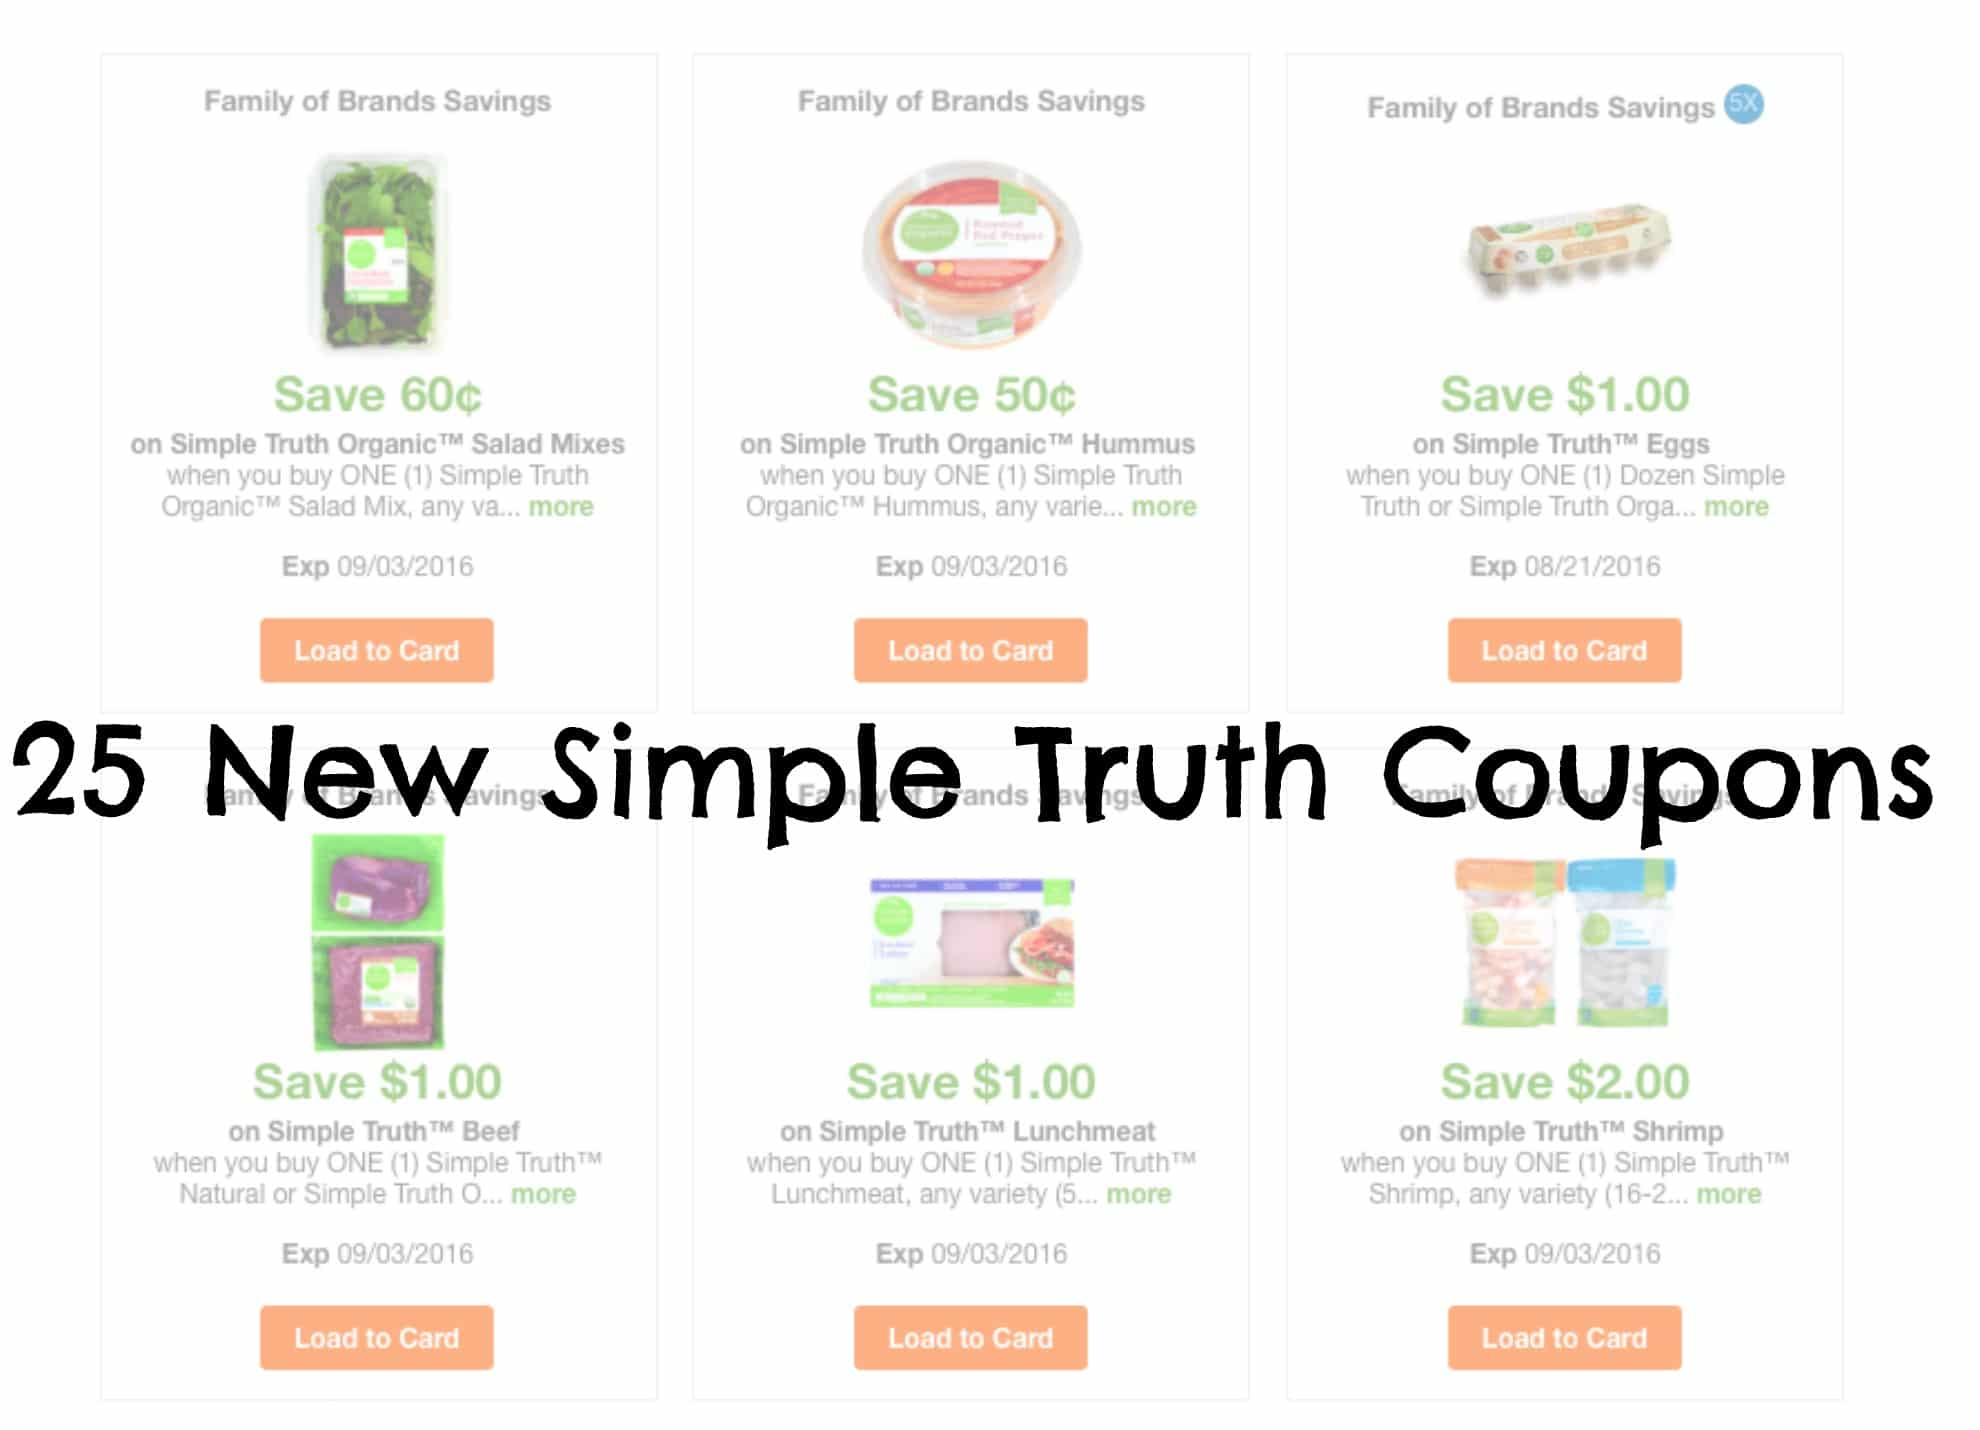 Easy trip discount coupons